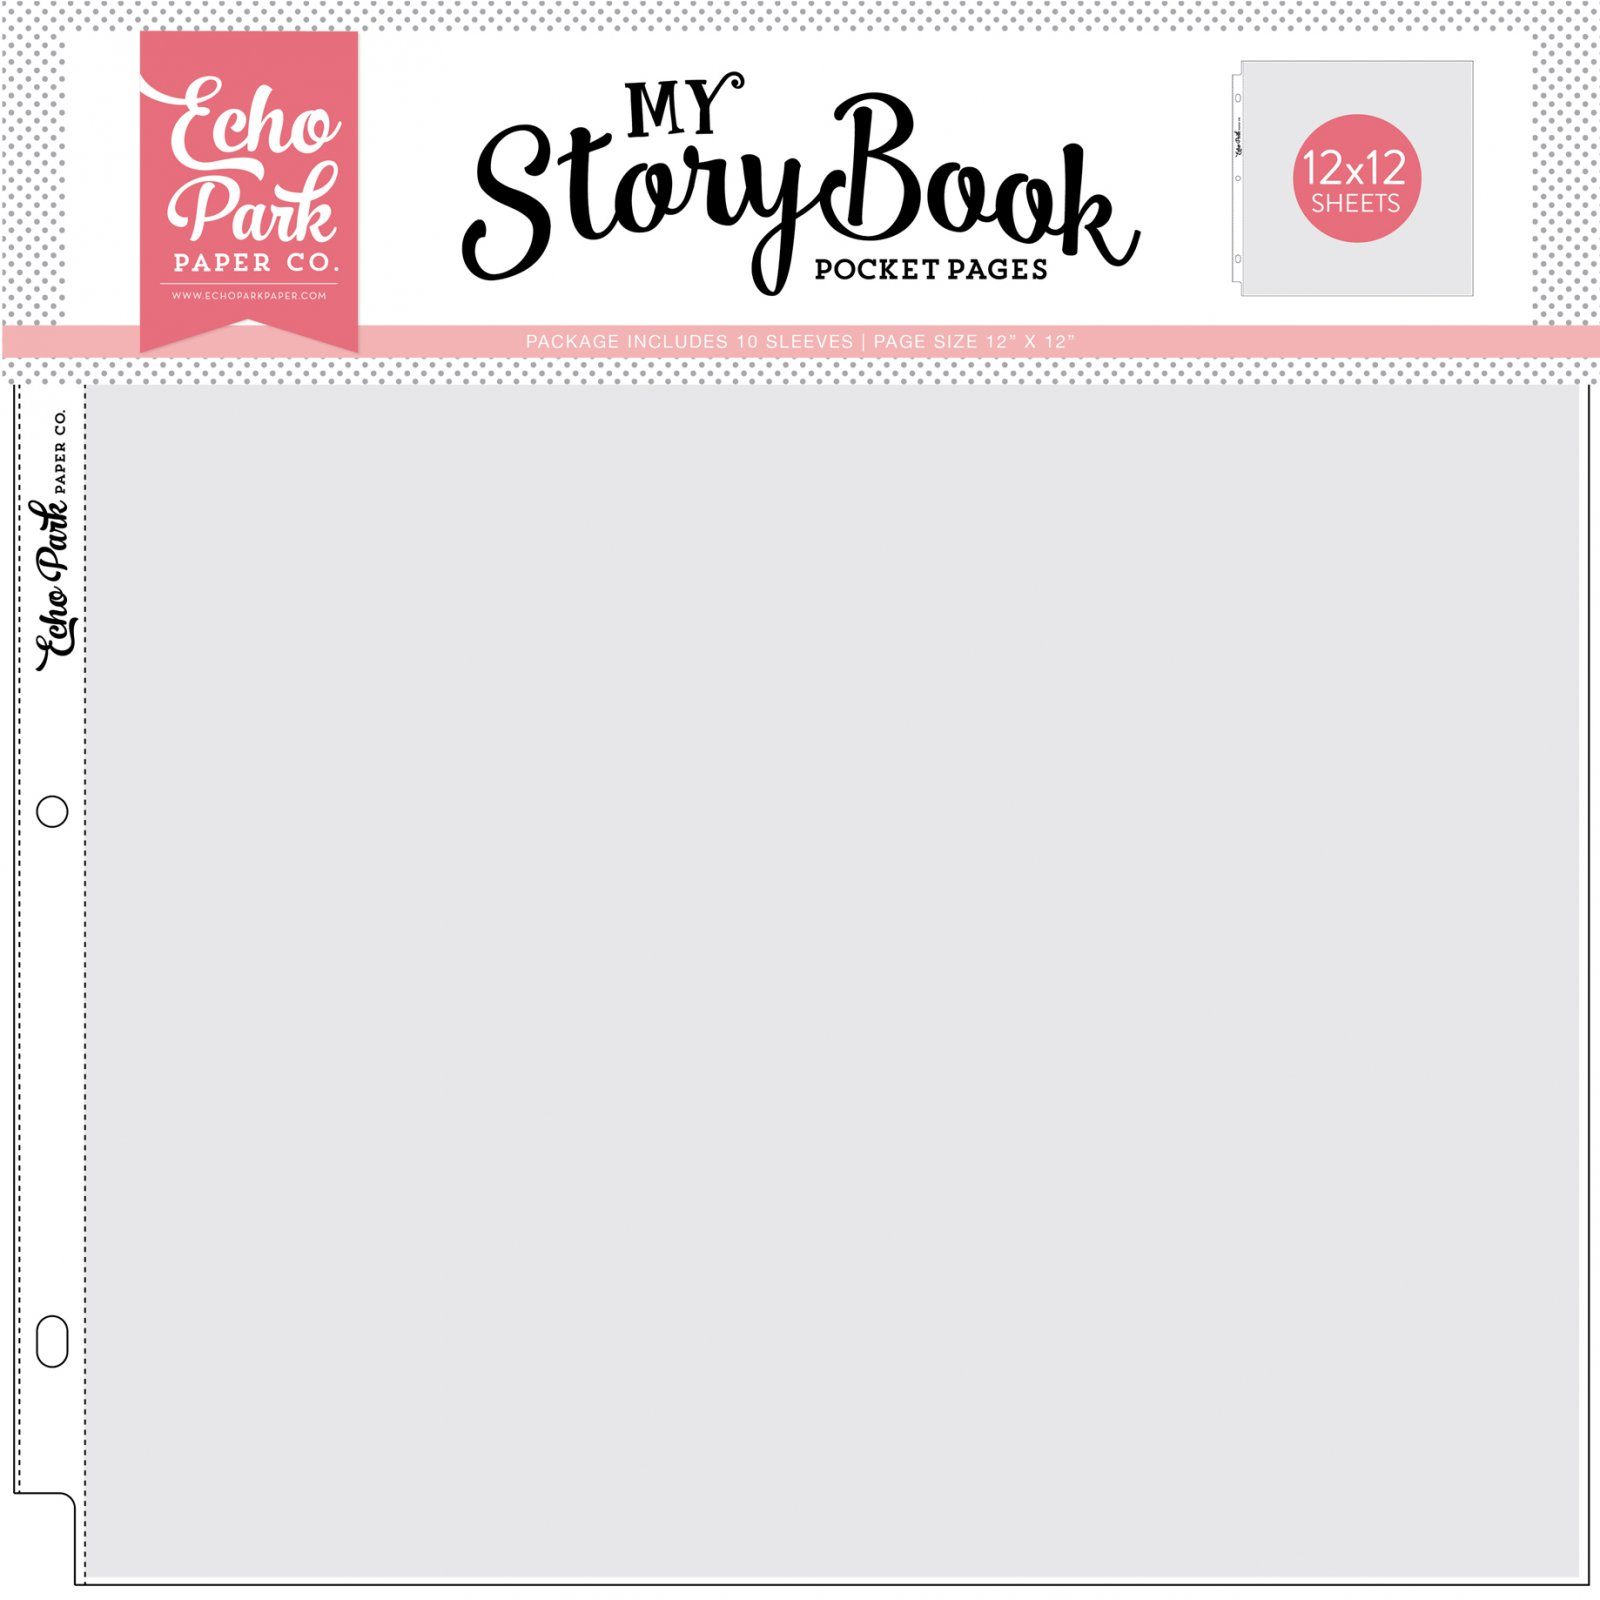 Echo Park My Story Book - 12x12 Pocket Pages, 10/Pkg